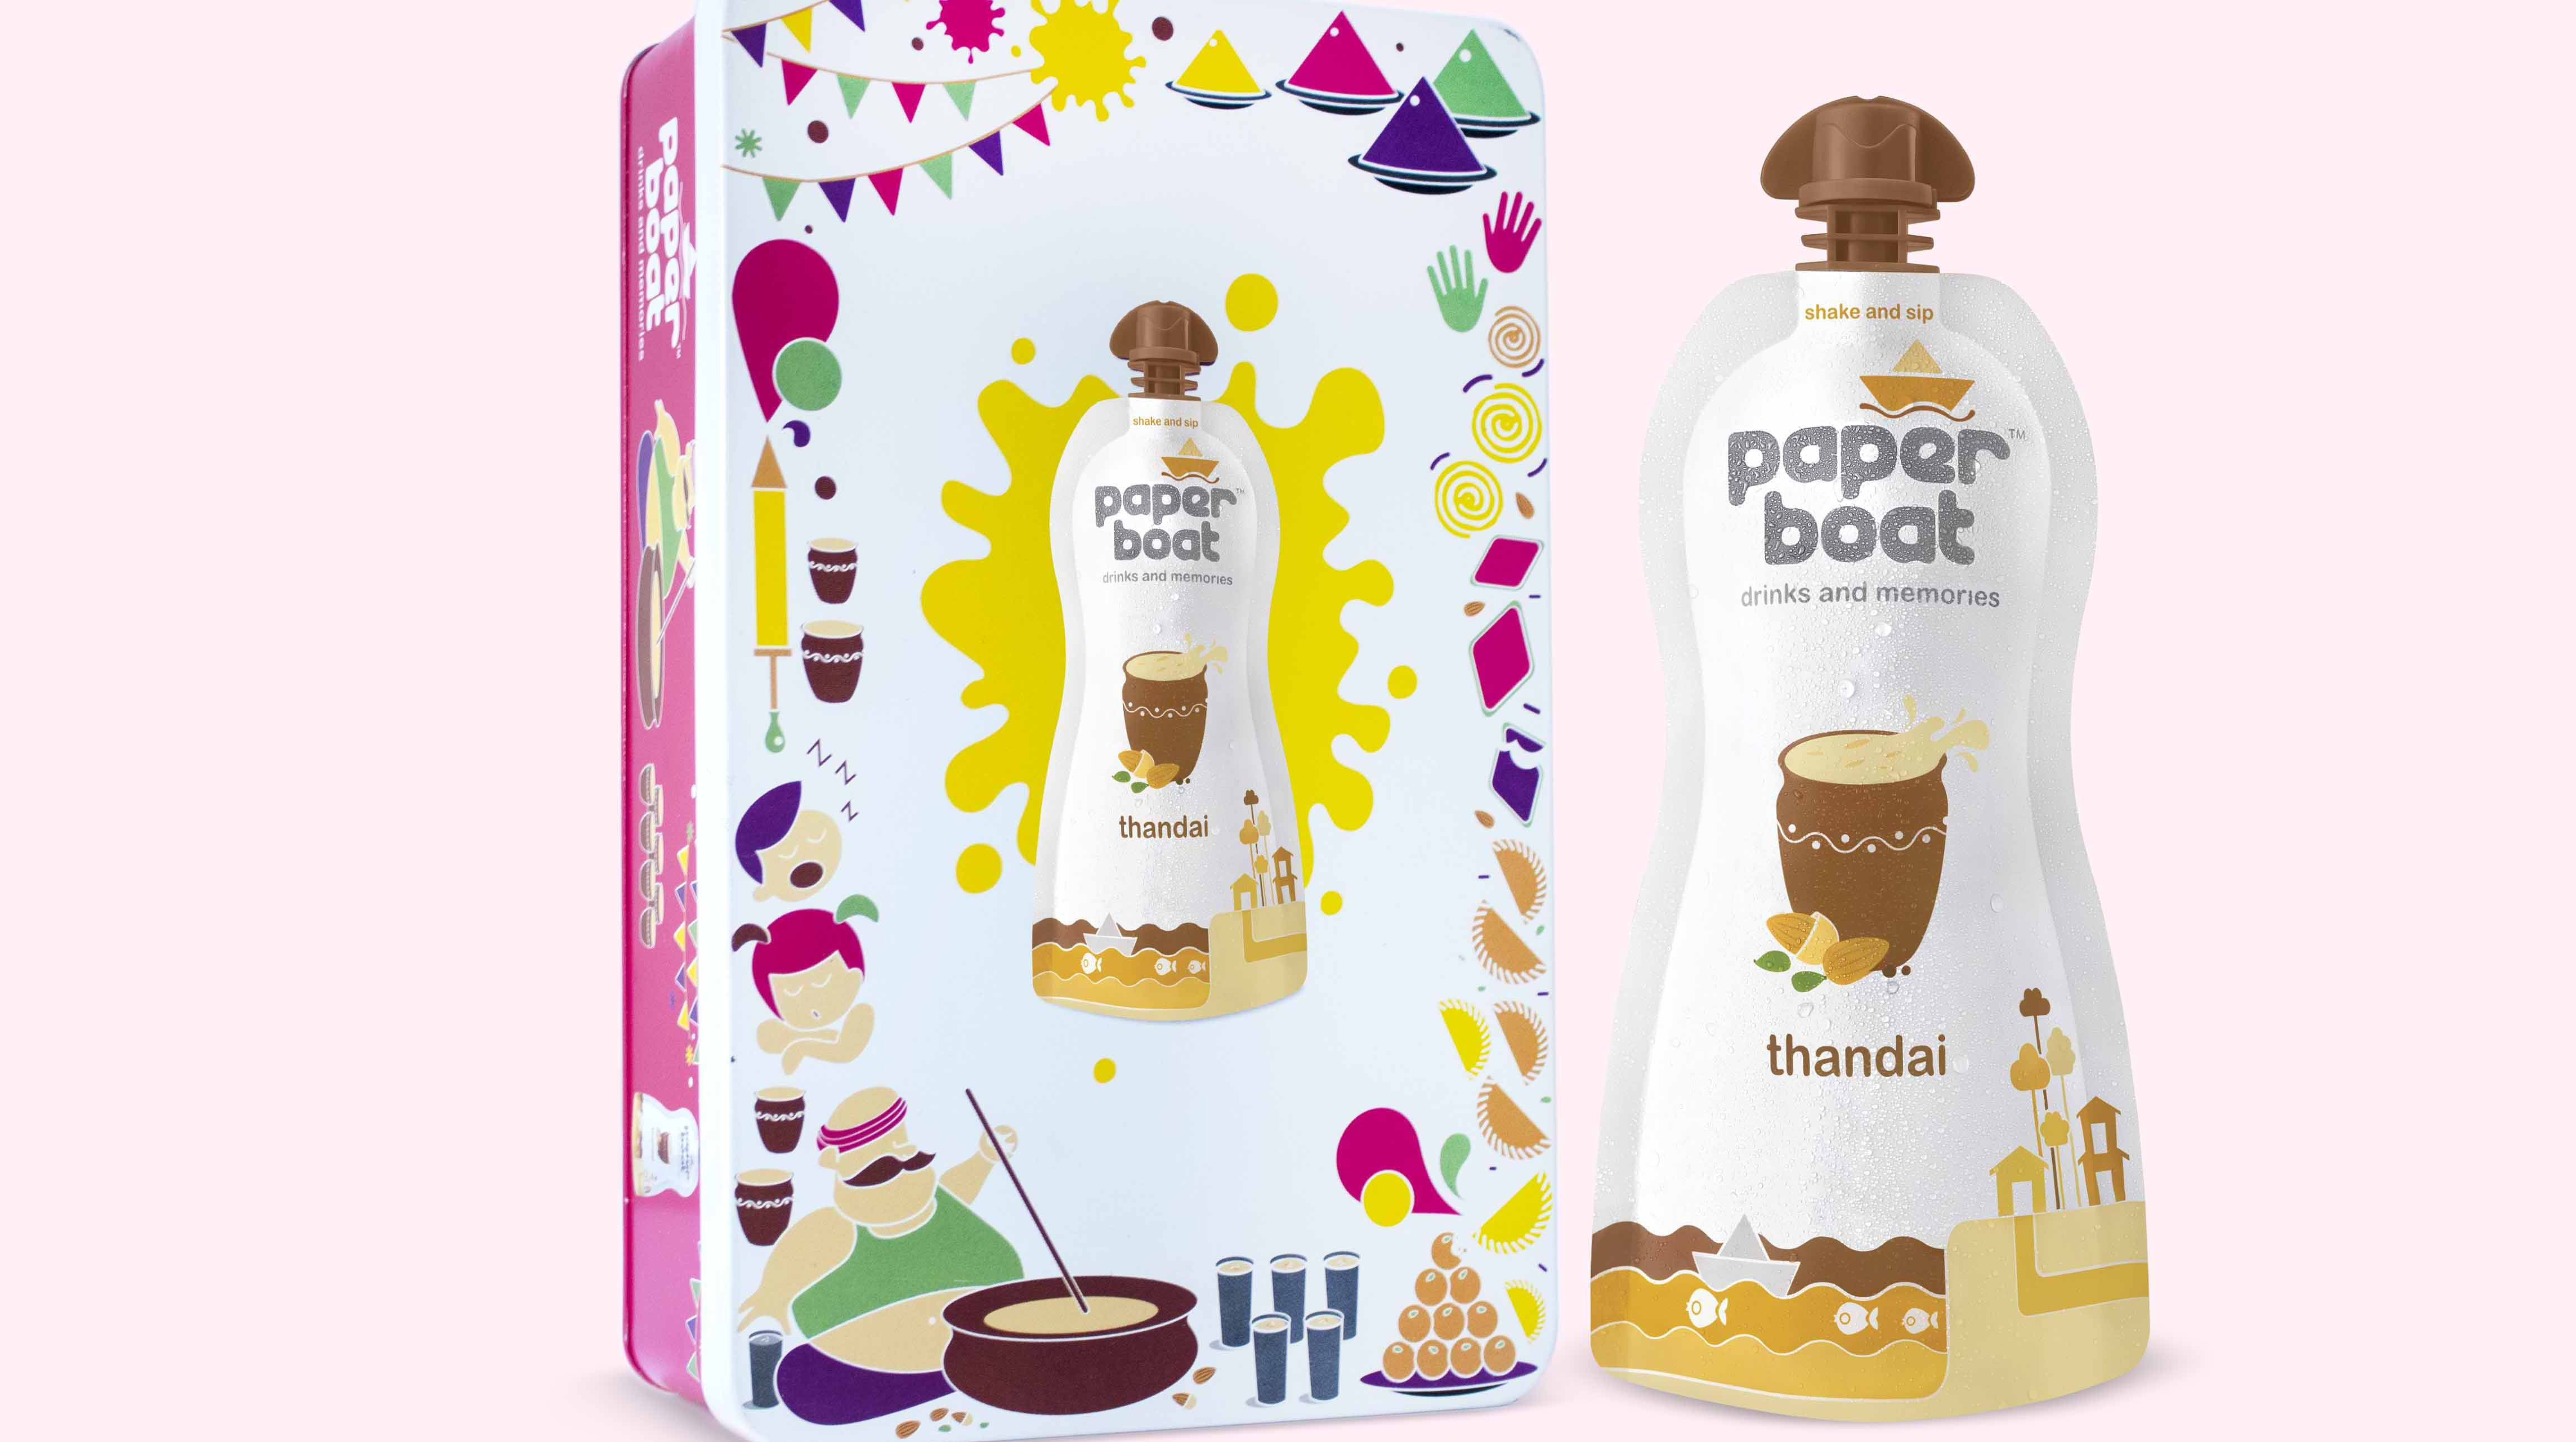 Paper Boat brings Thandai to cool down the upcoming summer effects